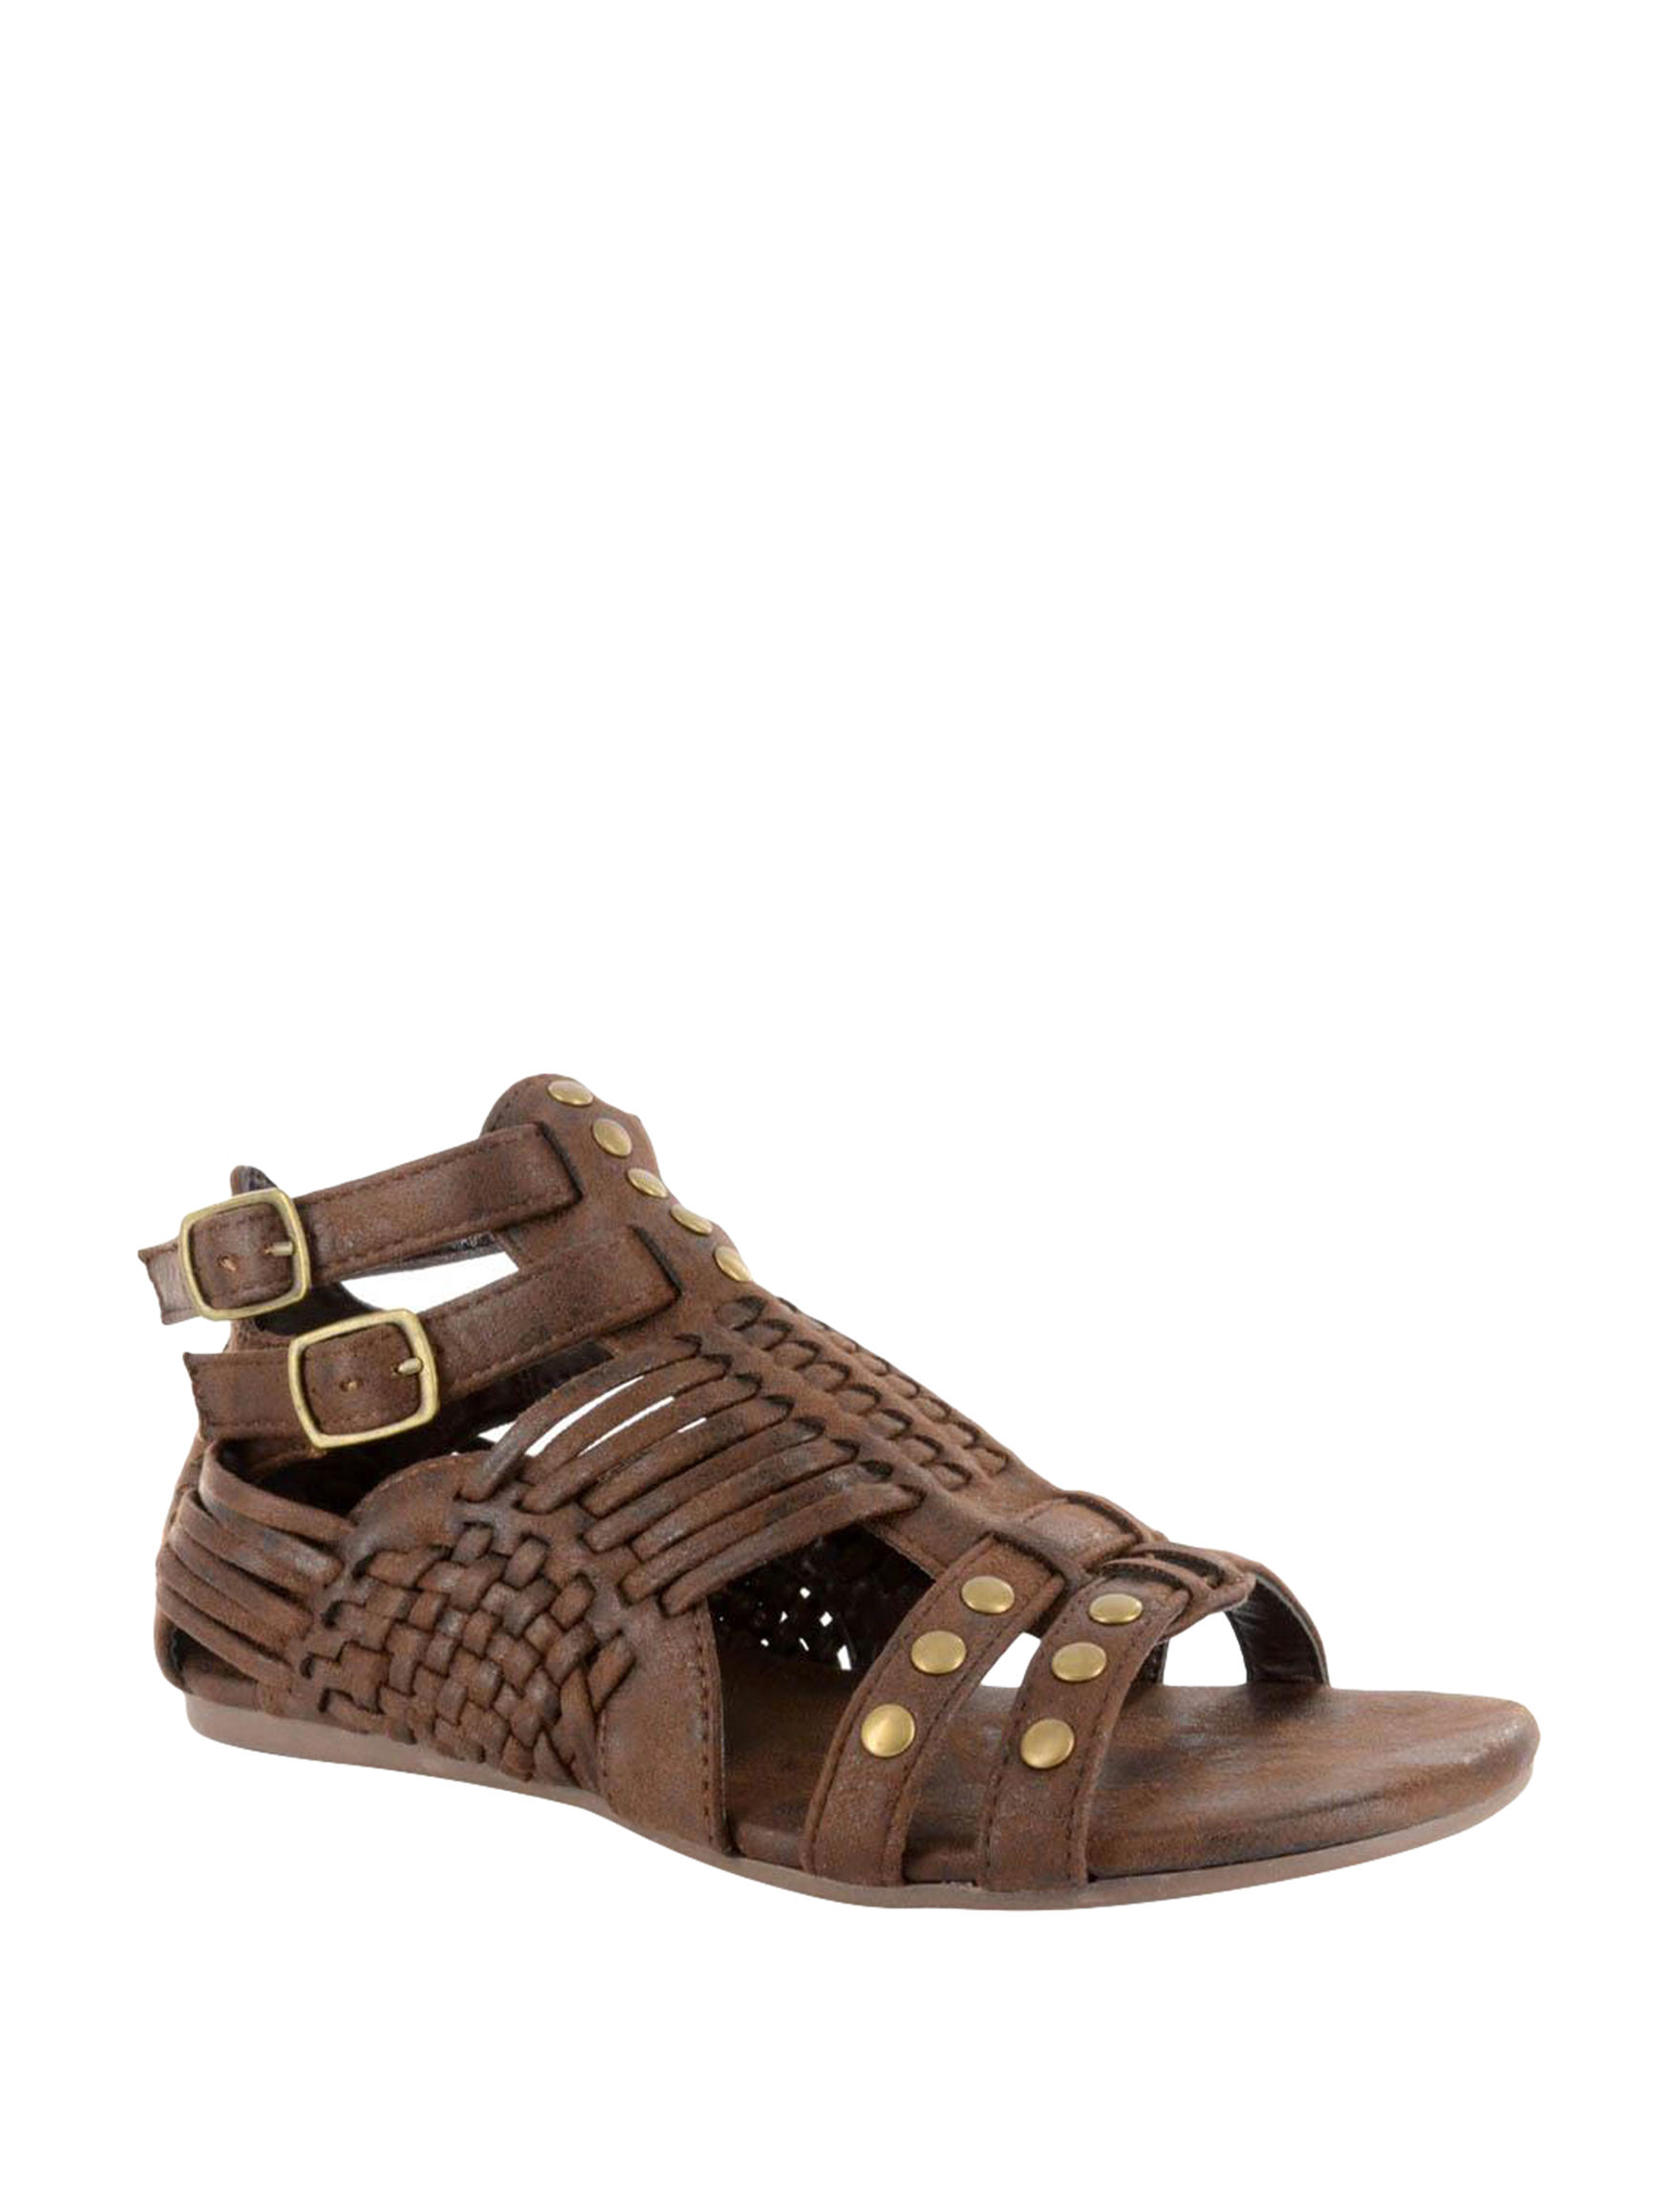 Corkys Light Brown Flat Sandals